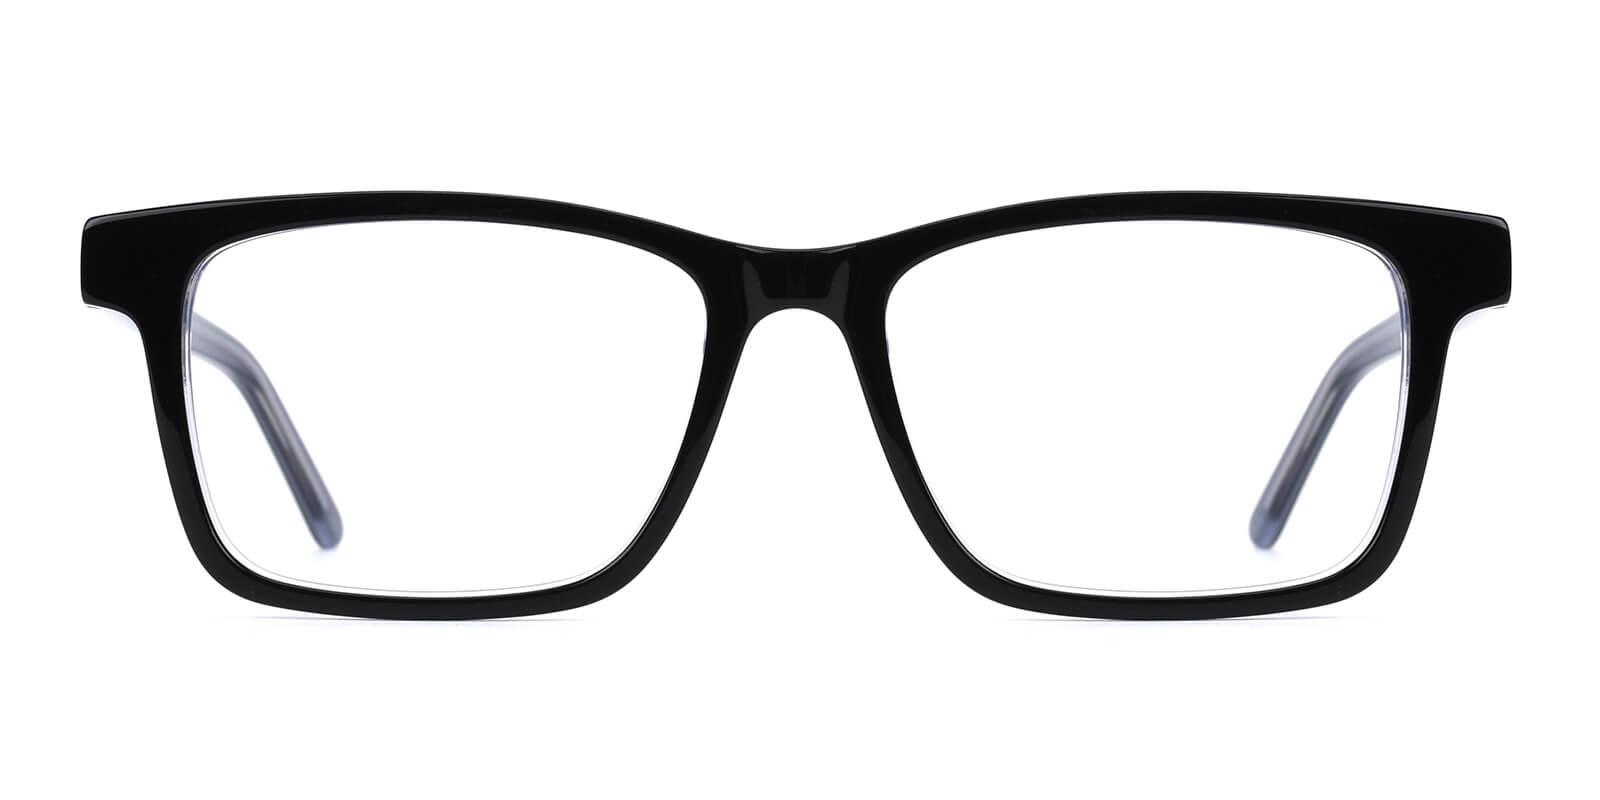 Richard-Multicolor-Square-Acetate-Eyeglasses-additional2